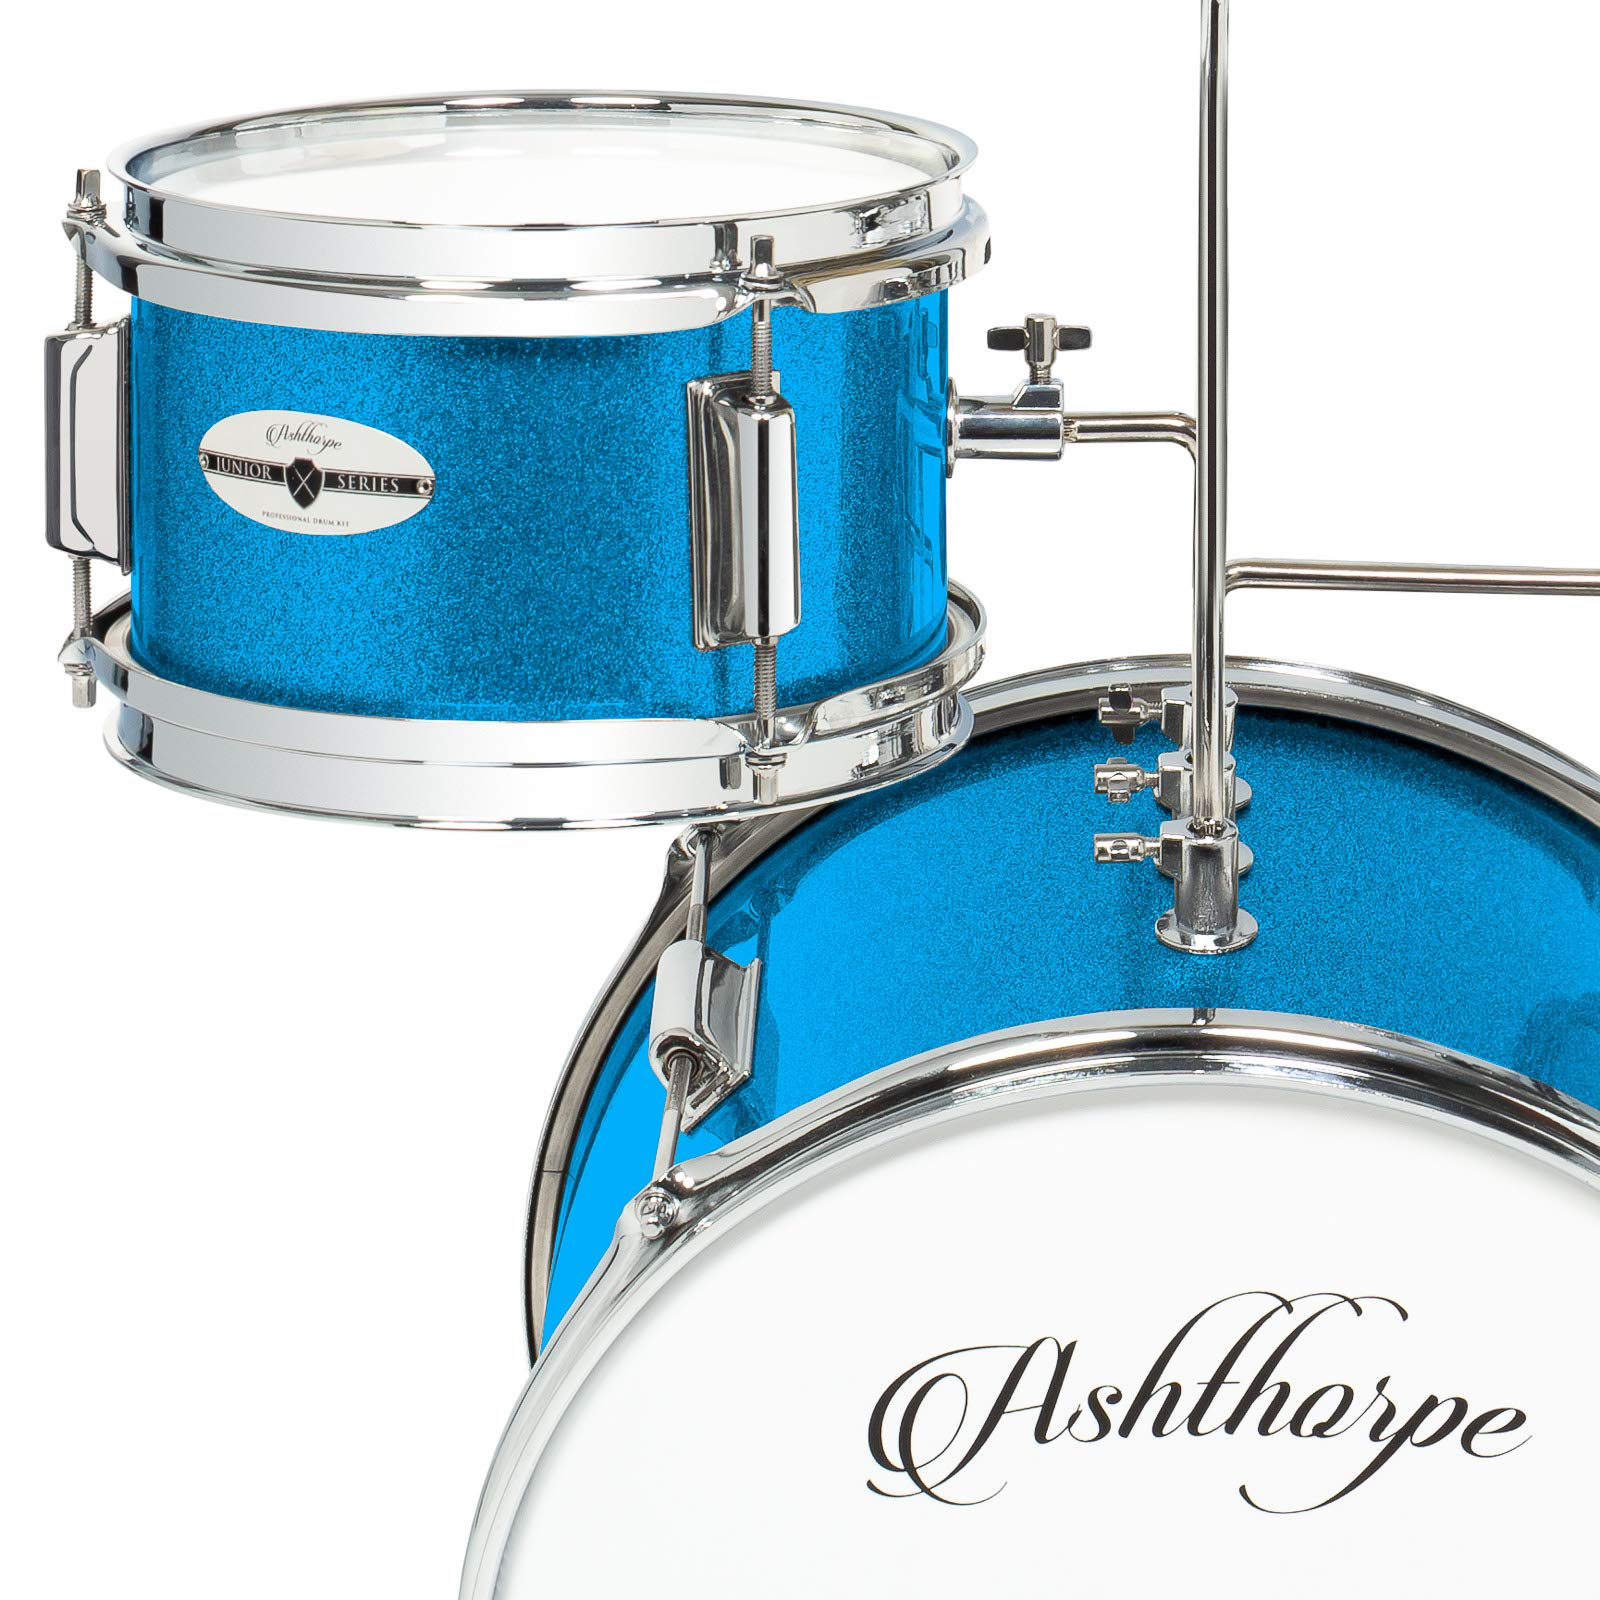 Ashthorpe 3-Piece Complete Kid's Junior Drum Set - Children's Beginner Kit with 14'' Bass, Adjustable Throne, Cymbal, Pedal & Drumsticks - Blue by Ashthorpe (Image #4)